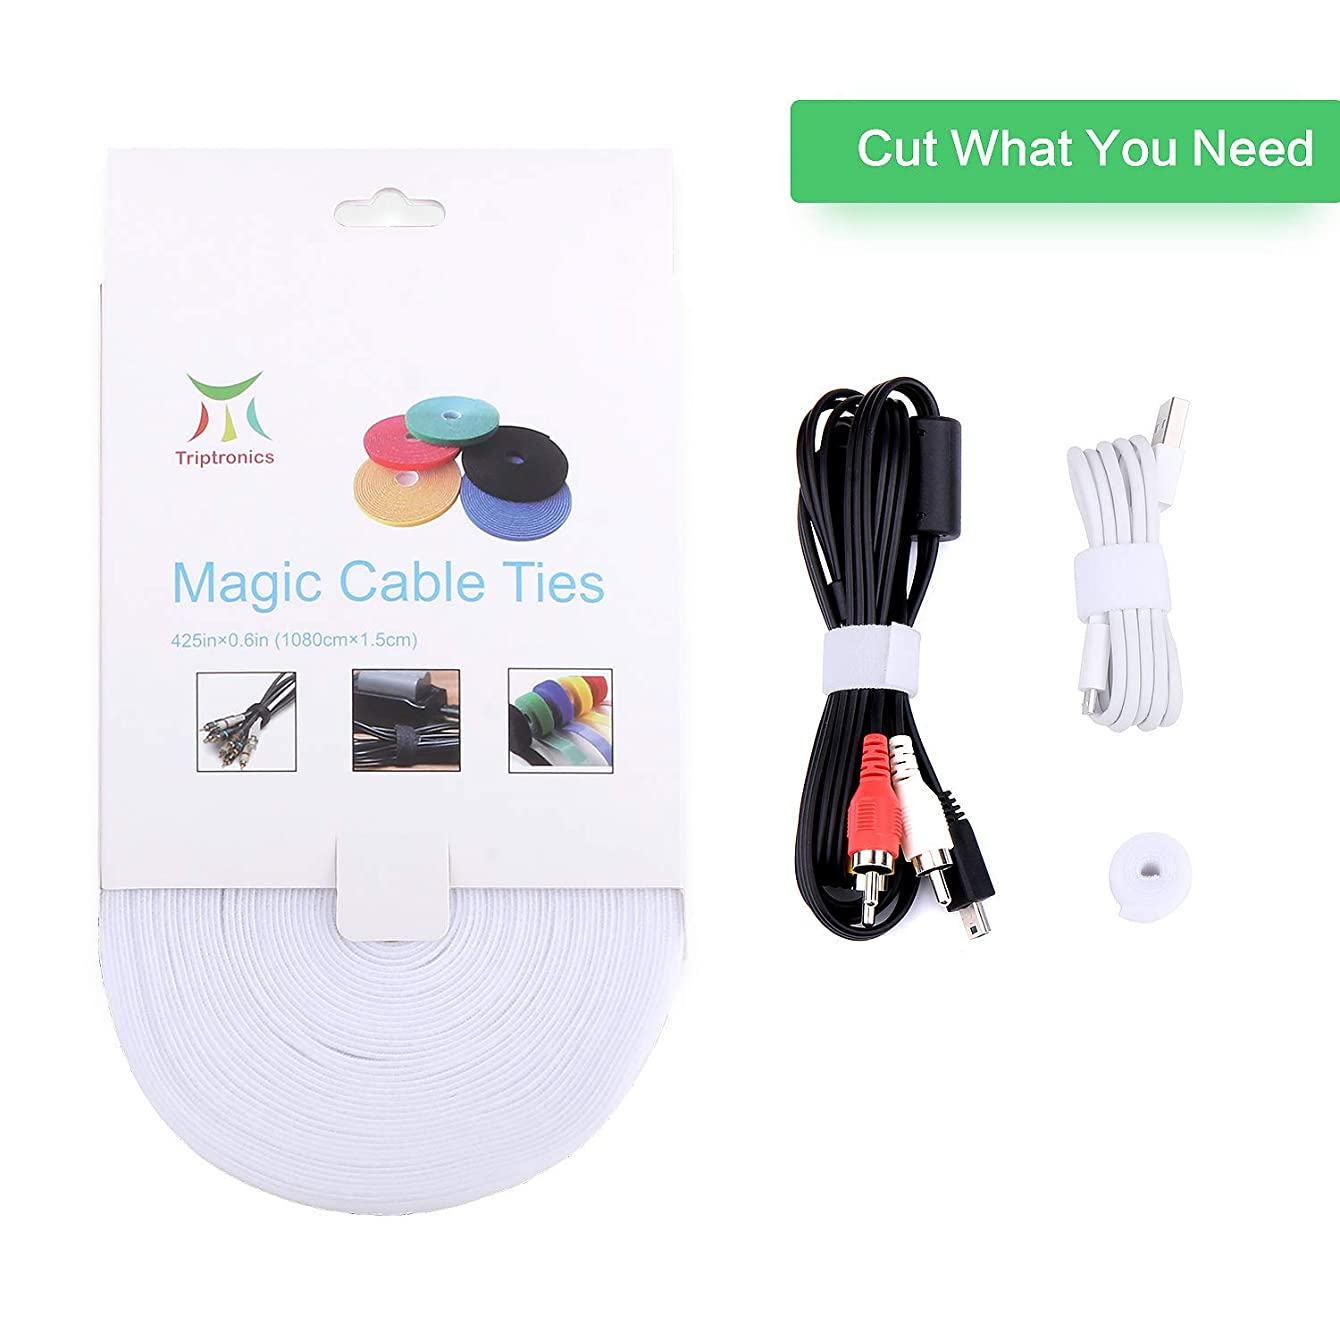 Roll Reusable Cord Organizer Keeper Holder, Fastening Cable Ties Straps for Earbud Headphones iPhone Wire Wrap Management, Hook and Loop Roll Cable Management … (White)